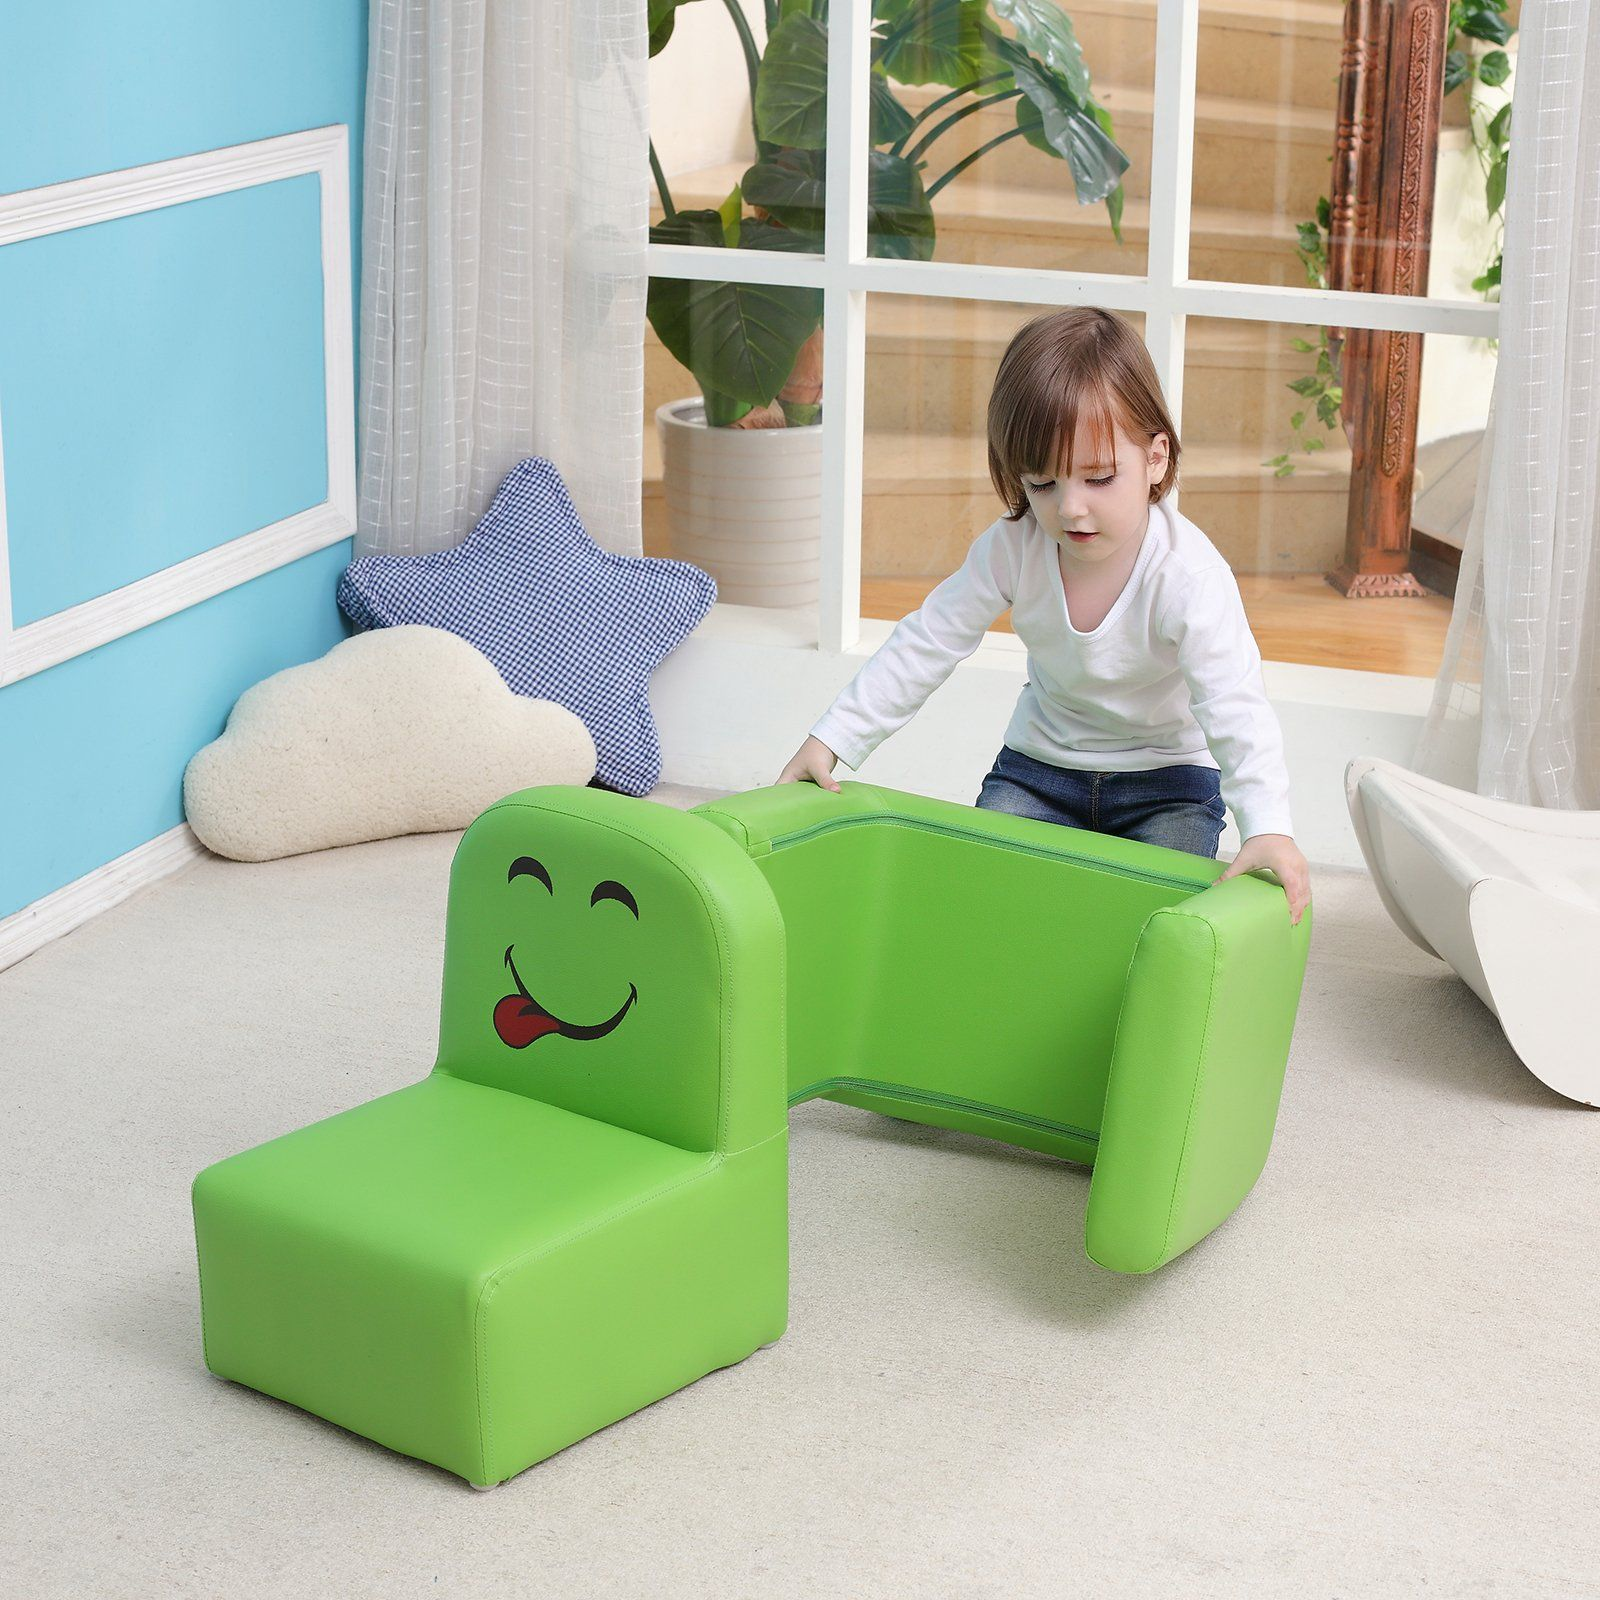 Case Of 30 Emall Life Multifunctional Childrens Armchair Kids Wooden Frame Chair And Table Set With Cartoon Toddler Sofa Childrens Armchair Wooden Frame Chair